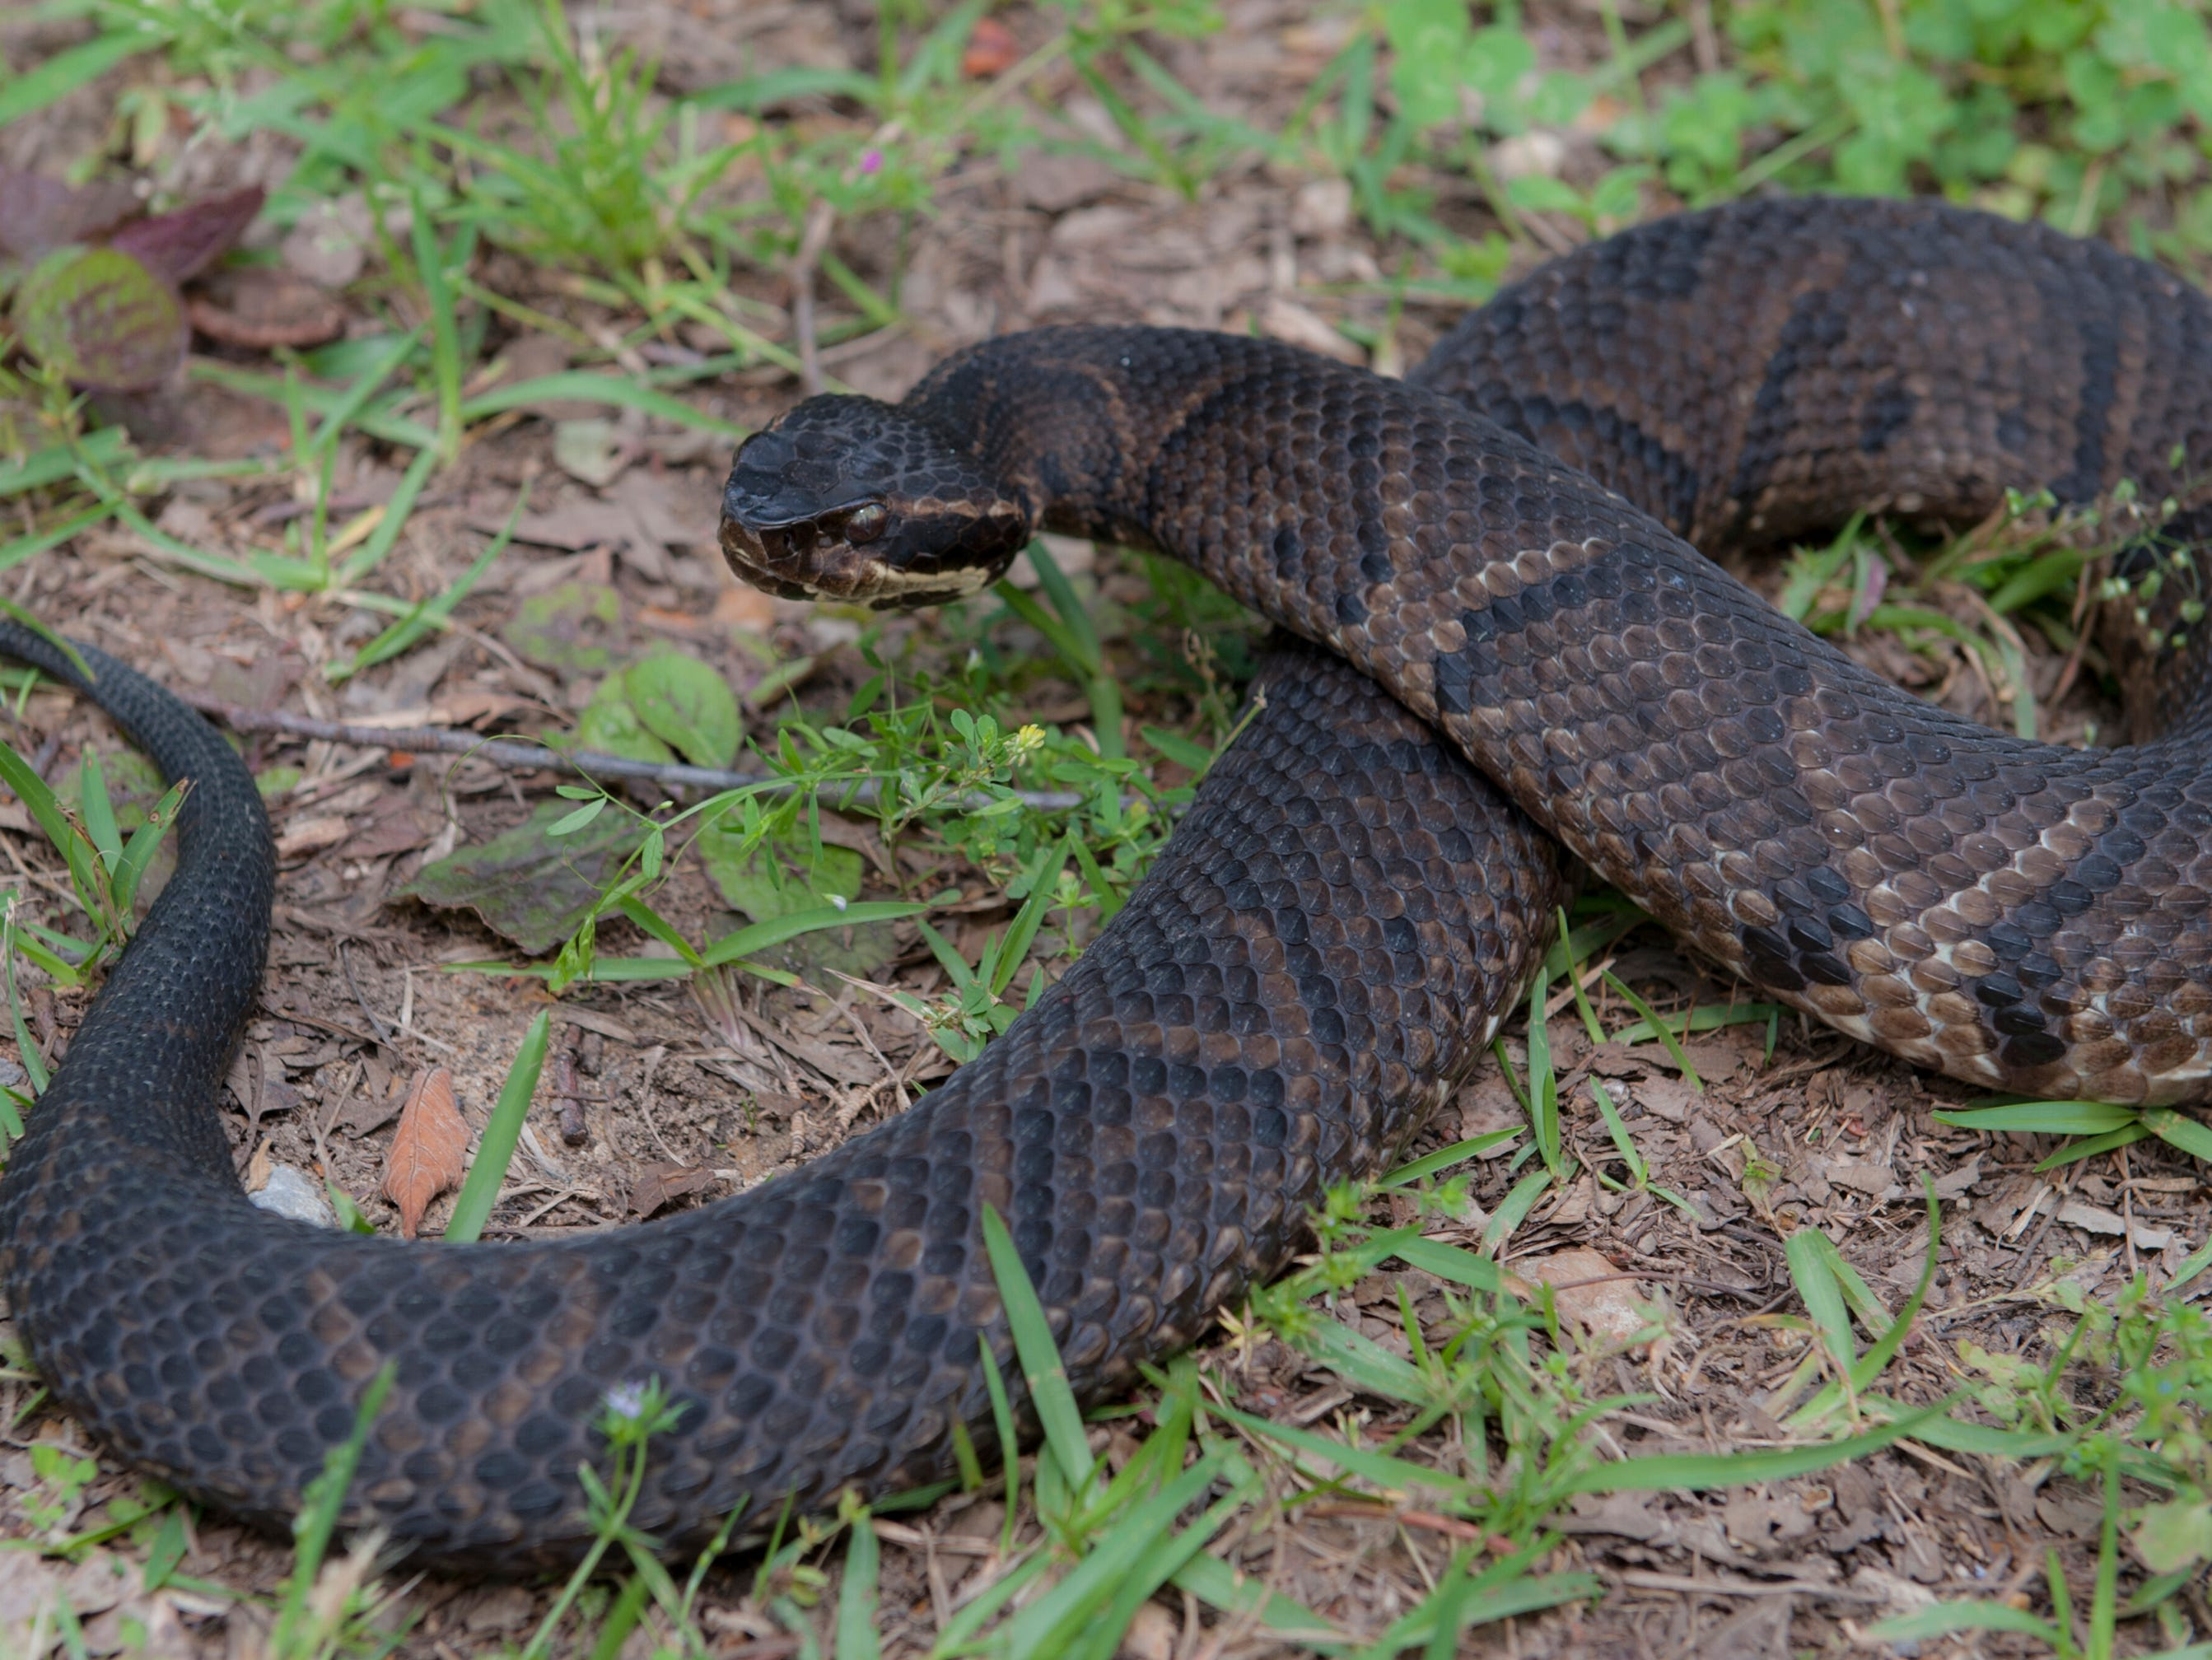 The white mouth of the cottonmouth stands out as a warning to anyone who might come too close when the venomous snake is resting camouflaged on a bed of wet leaves .